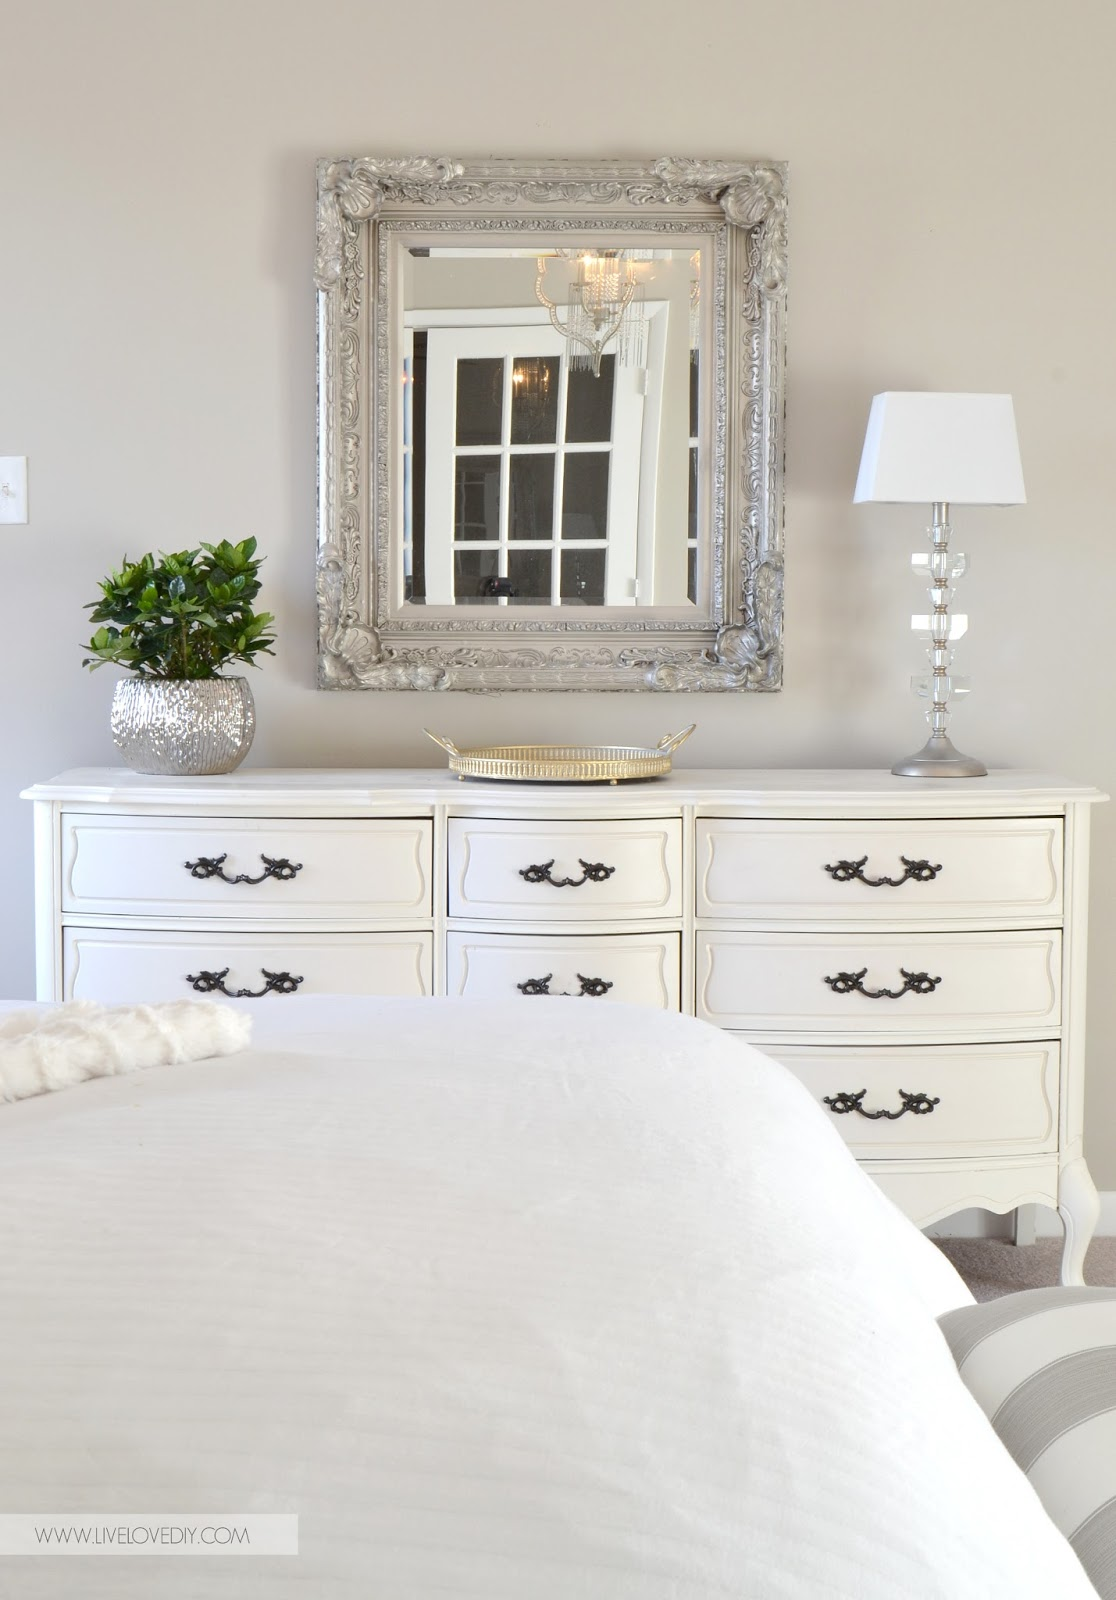 LiveLoveDIY: DIY Decorating Ideas for Your Bedroom